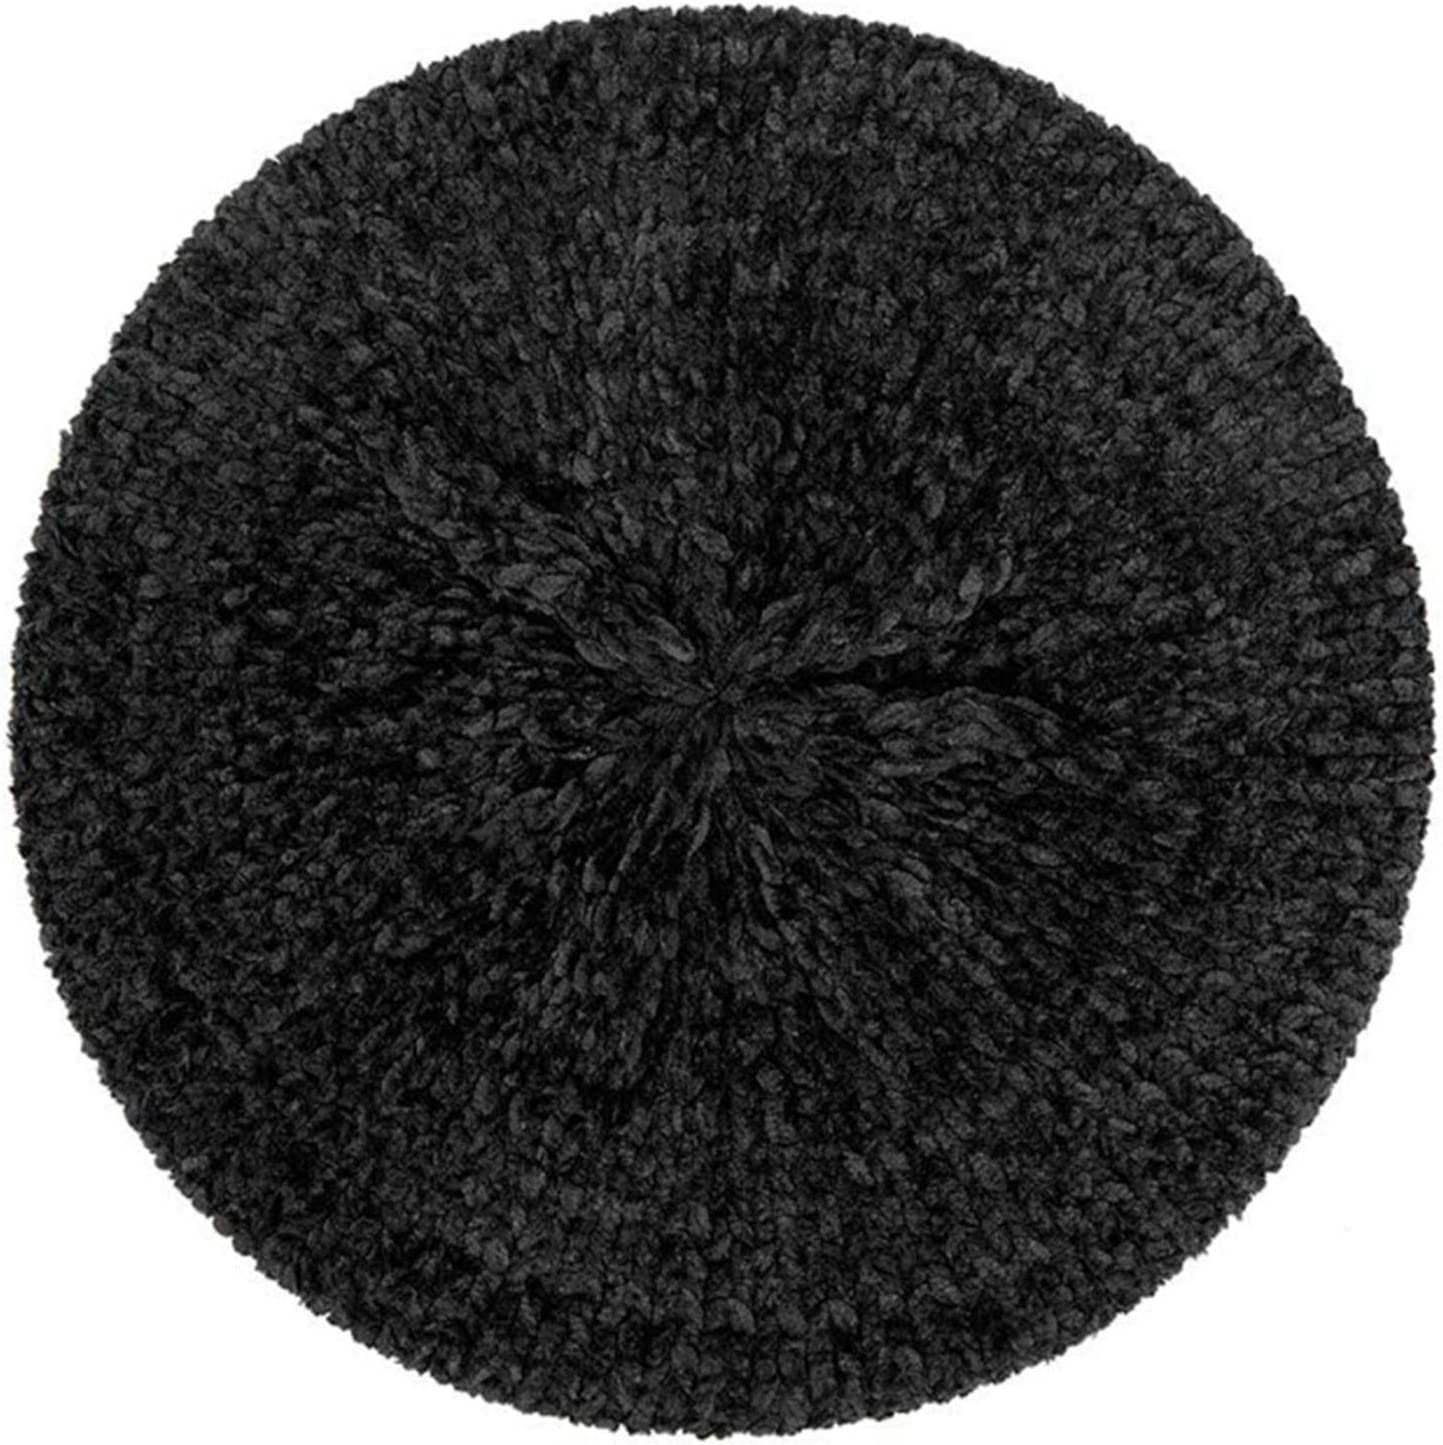 WEILYDF Stylish Chenille Beret Casual Solid Color Winter Warm Hat for Men and Women, Style 4